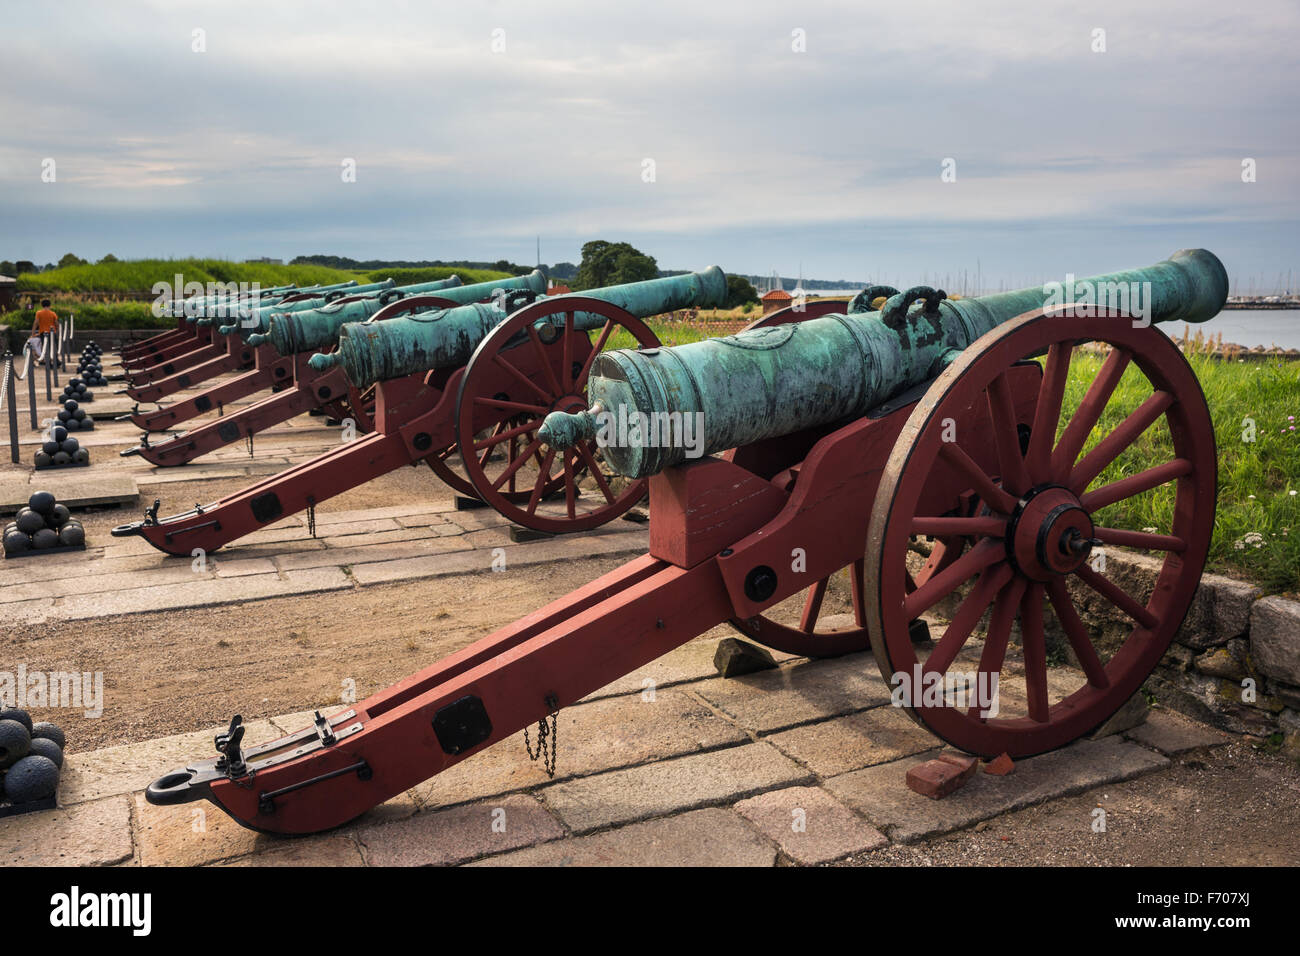 Old  cannons in  the Kronborg castle the Helsingor (Elsinore) town, Denmark - Stock Image